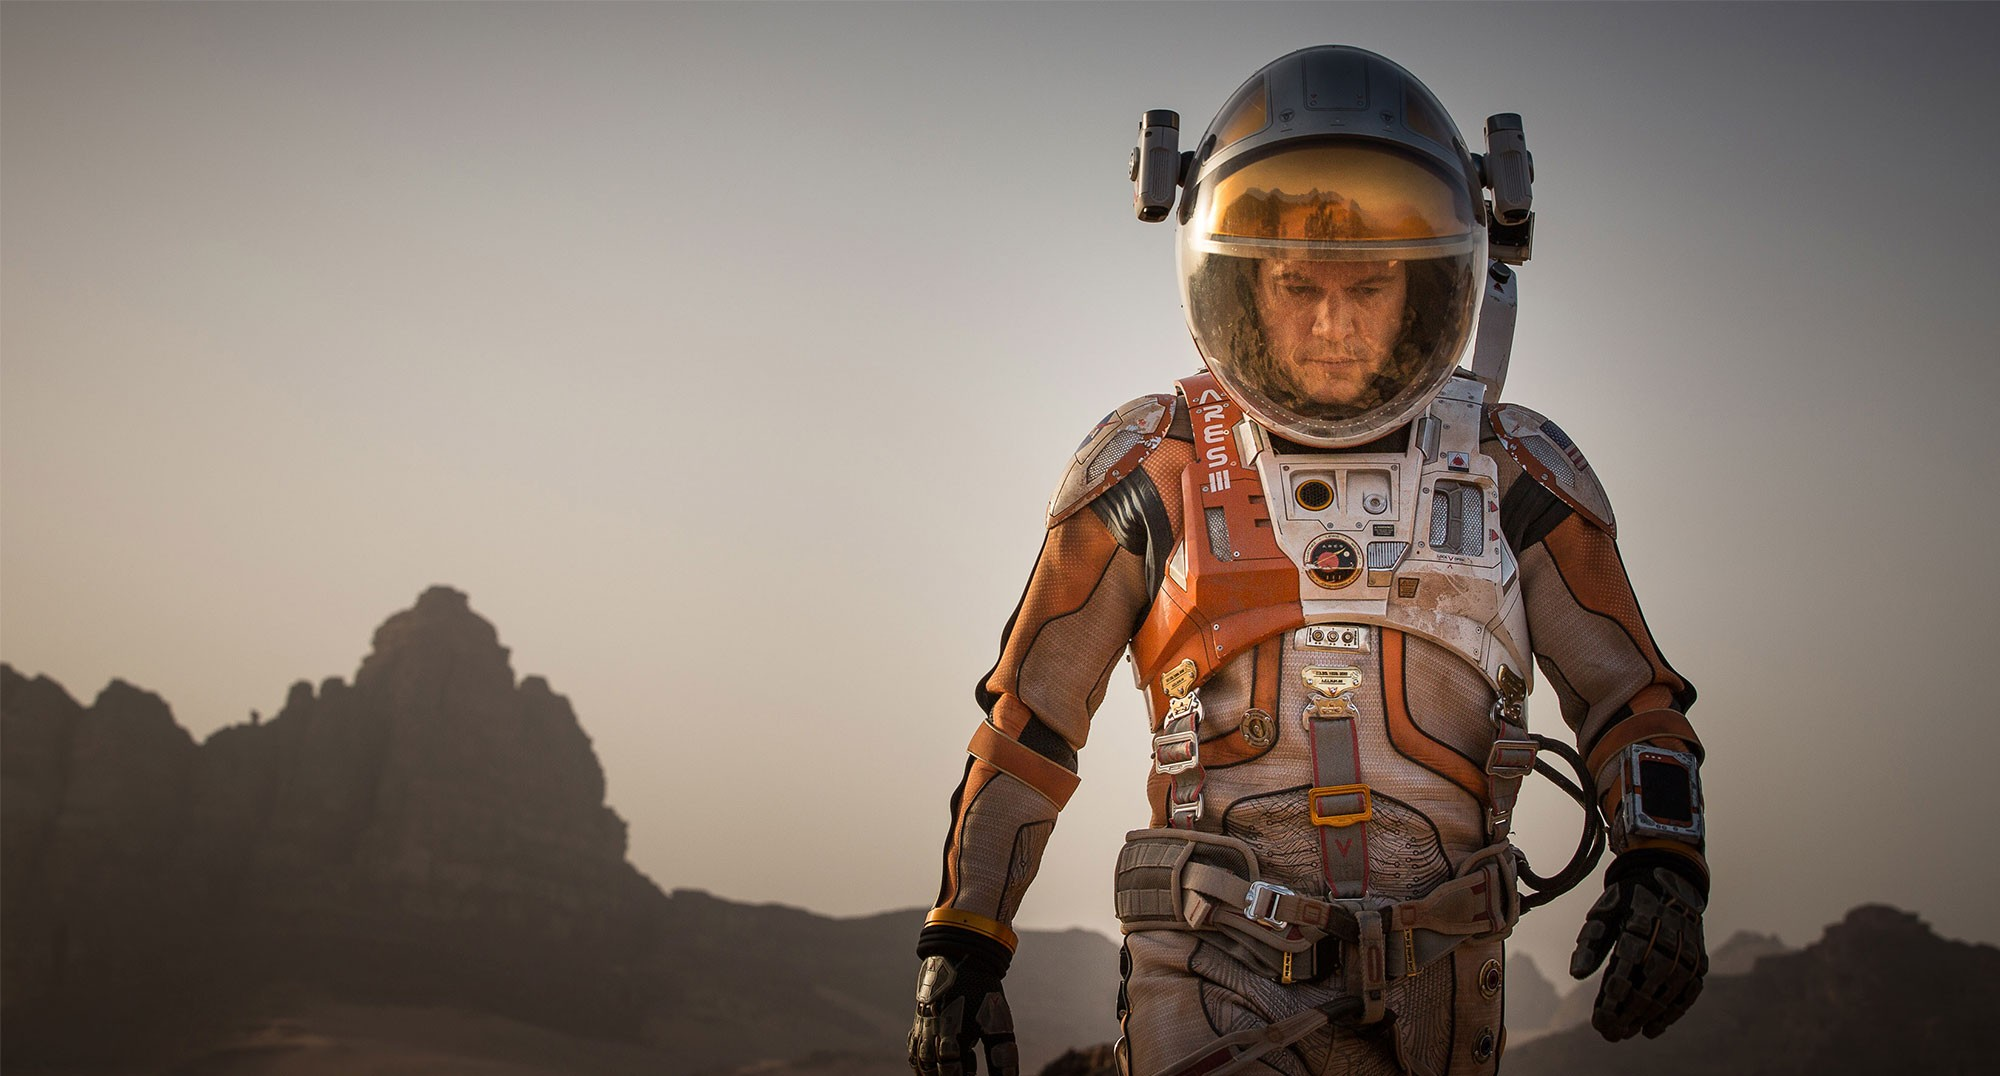 The Martian: A brilliant captivating film